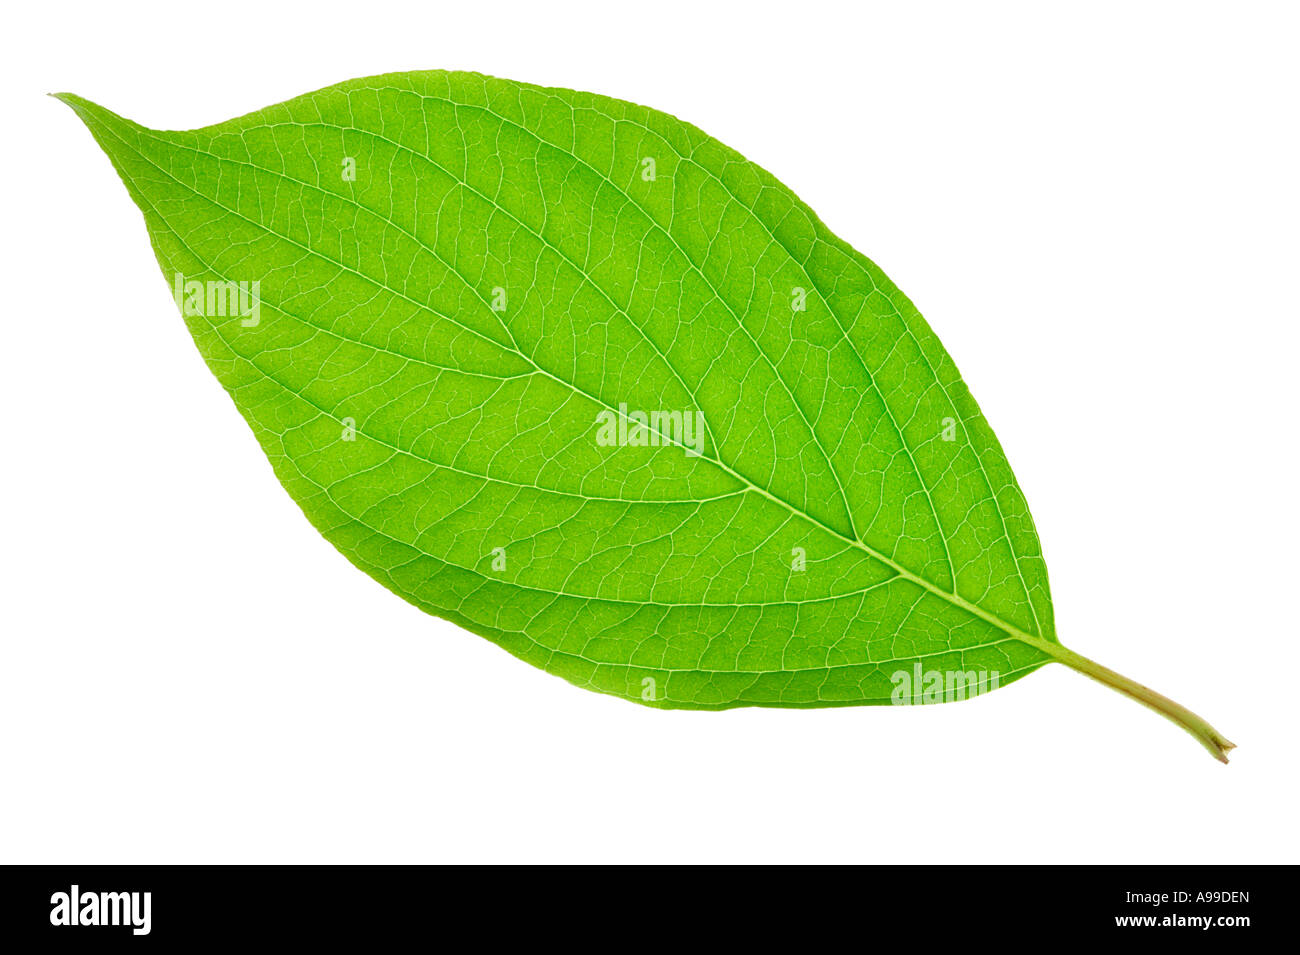 Detailed macro shot of a green leaf isolated on white - Stock Image